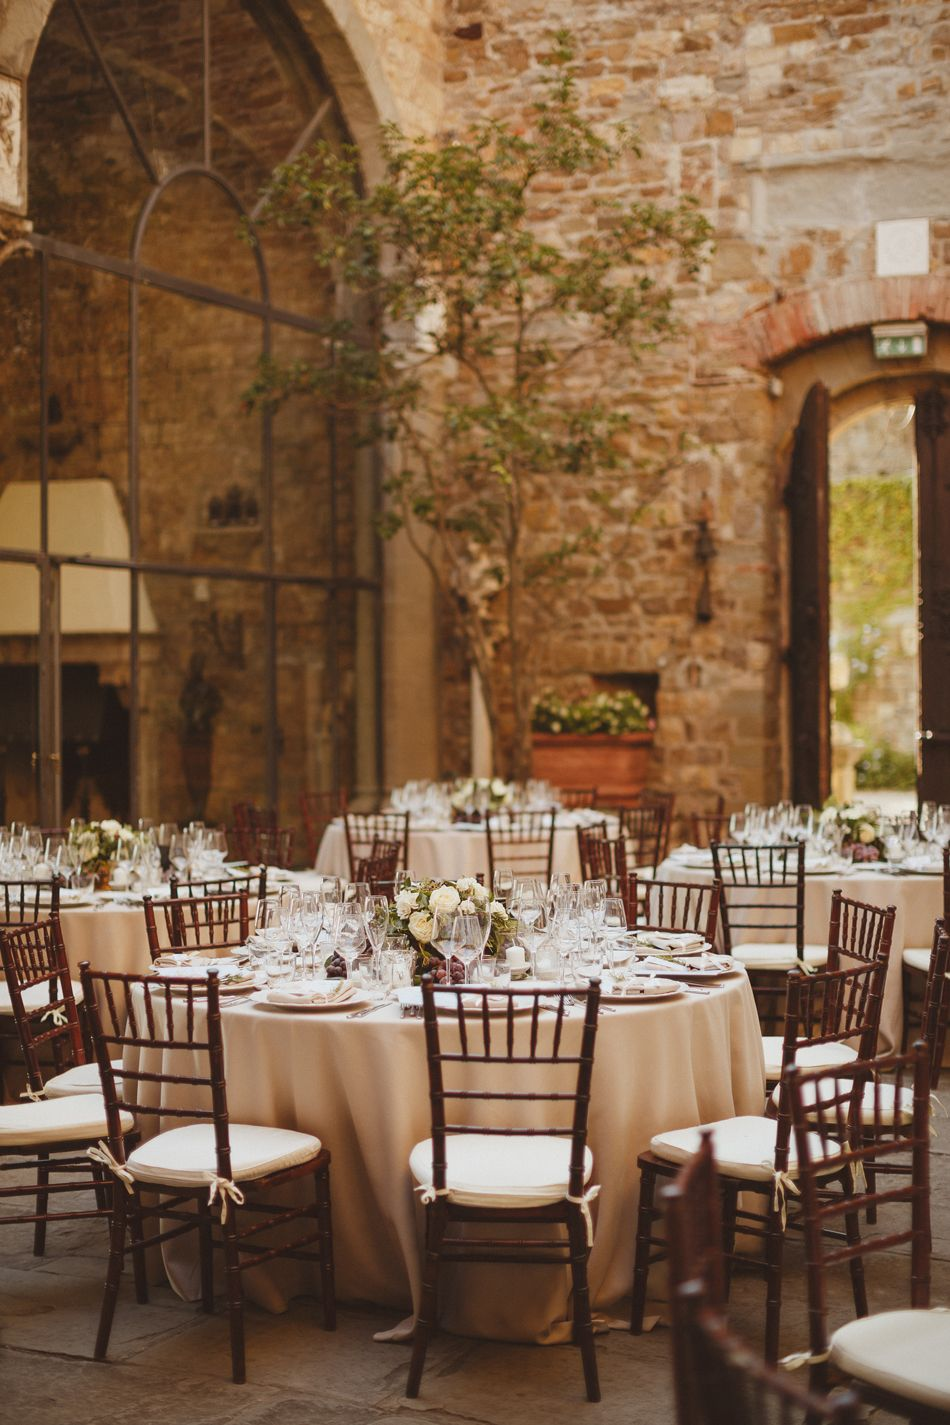 Italian Wedding With Old World European Charm